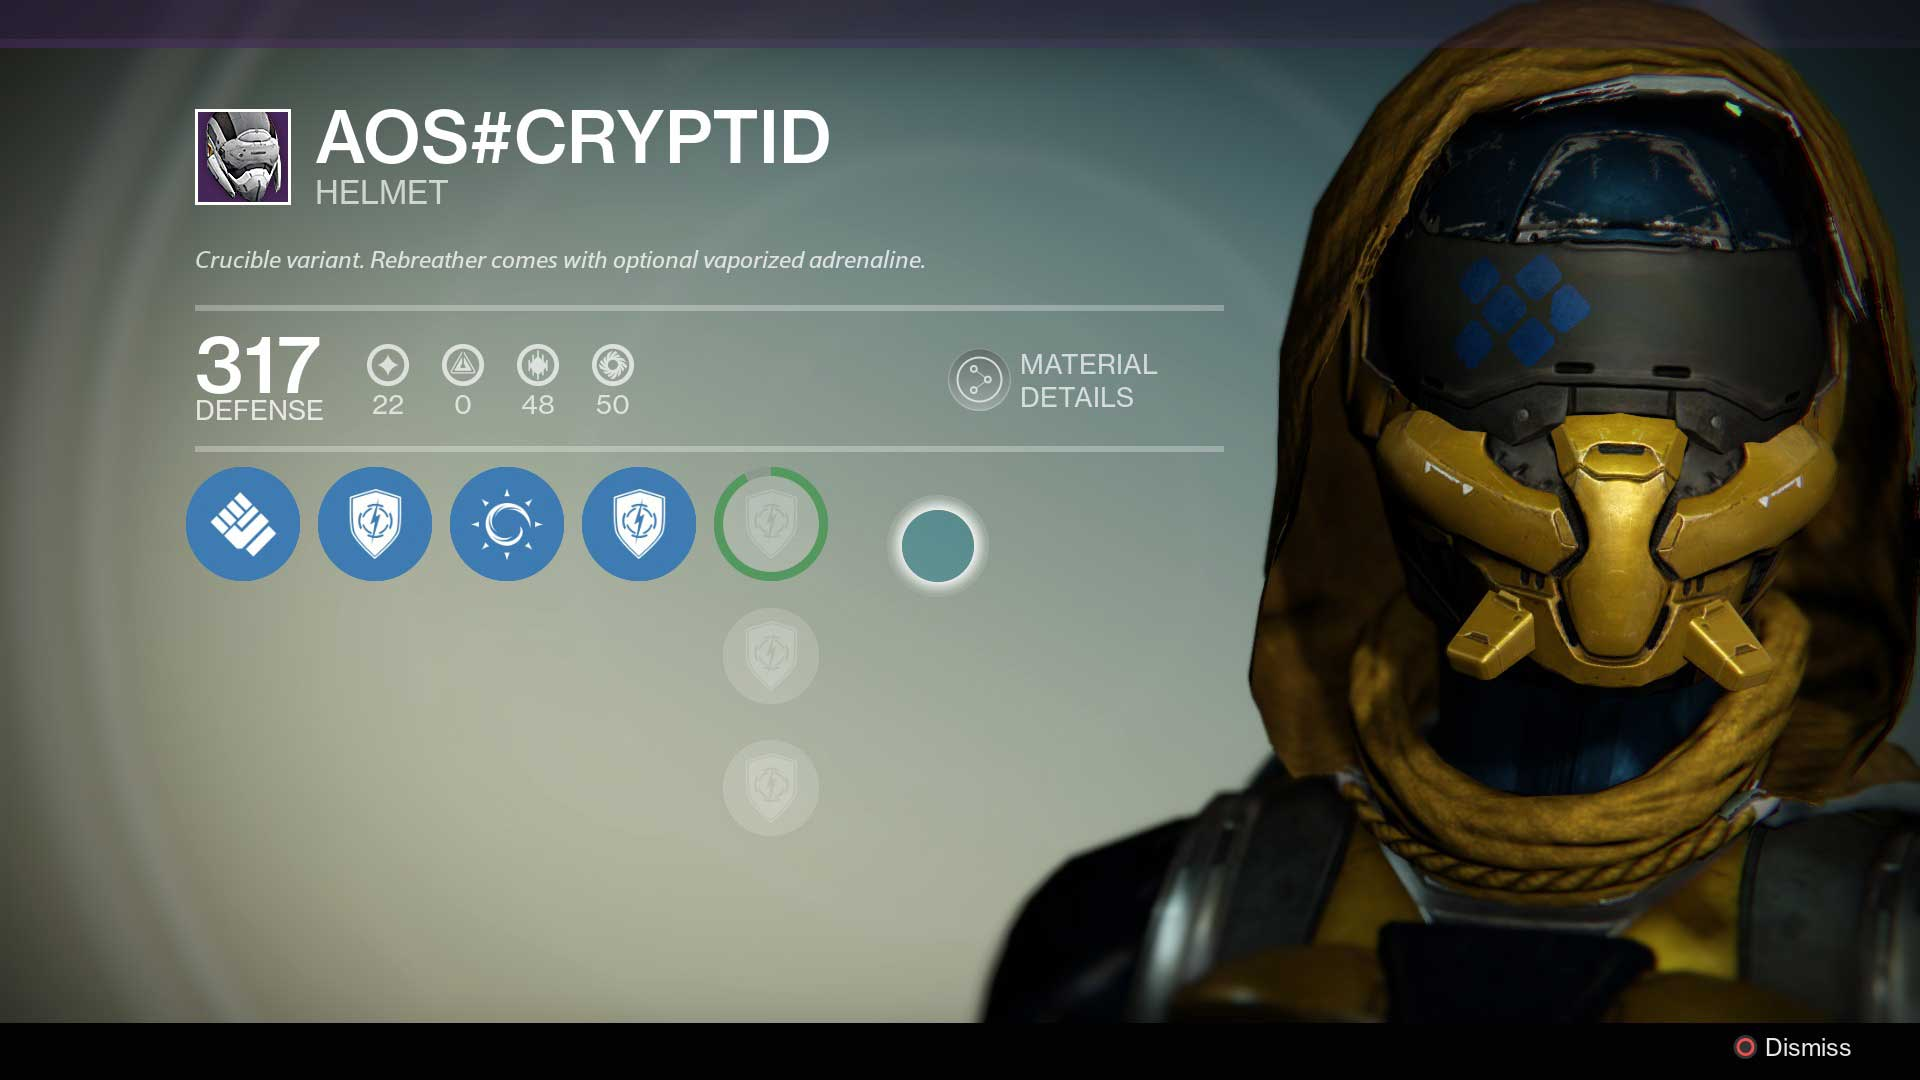 Ll start us off with a look at my hunter s legendary helmet and